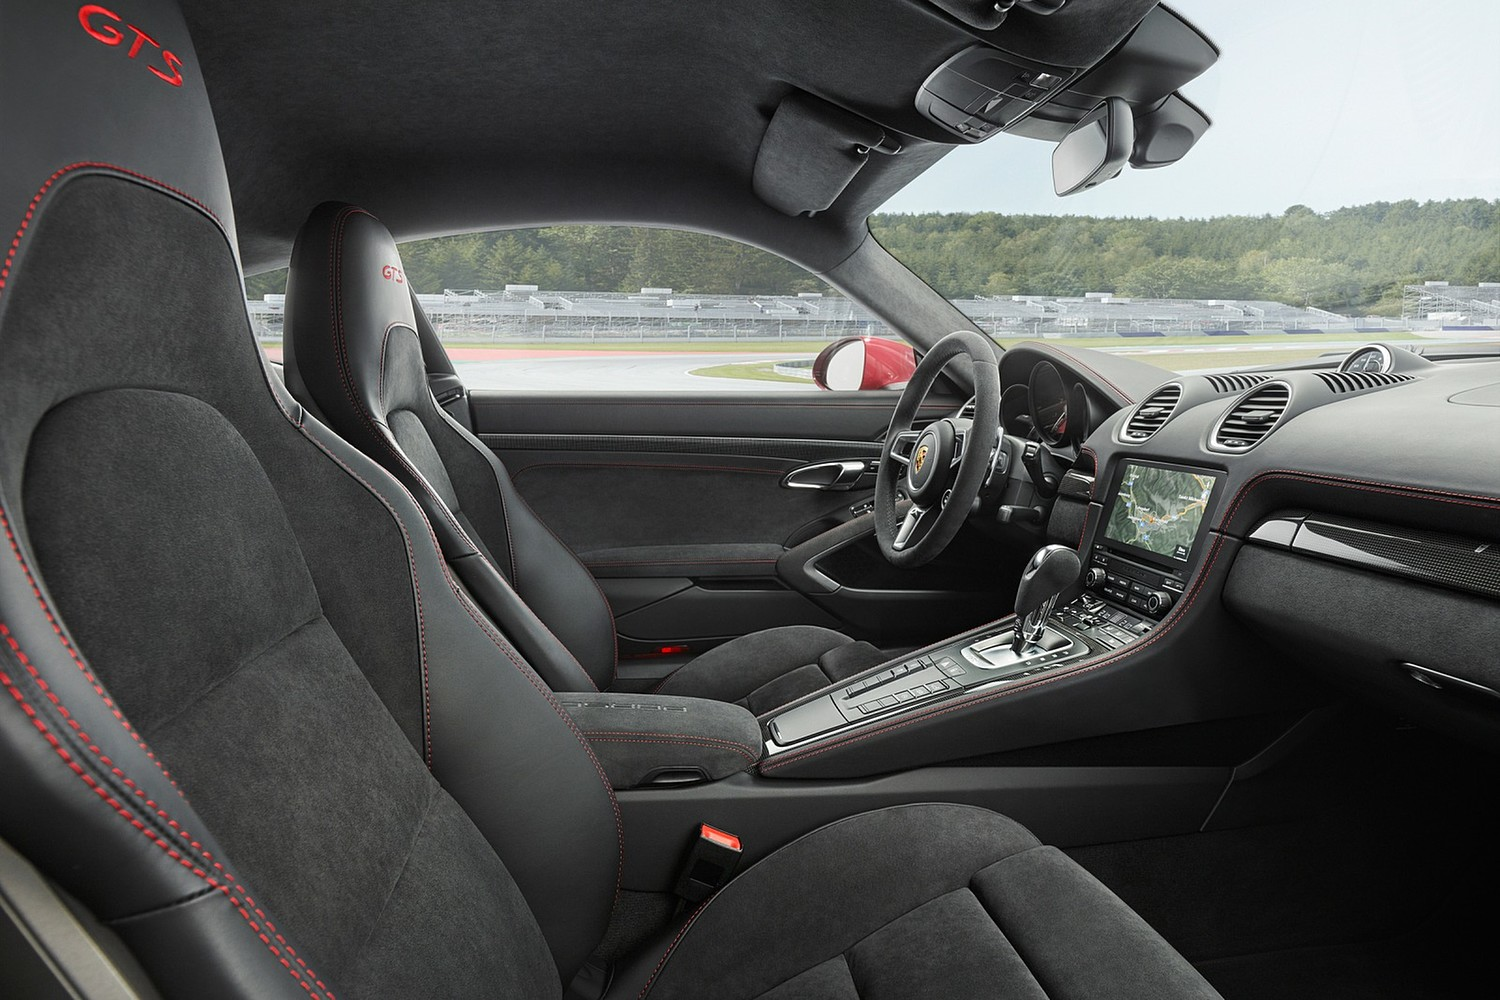 2018 Porsche 718 Cayman GTS Coupe Interior